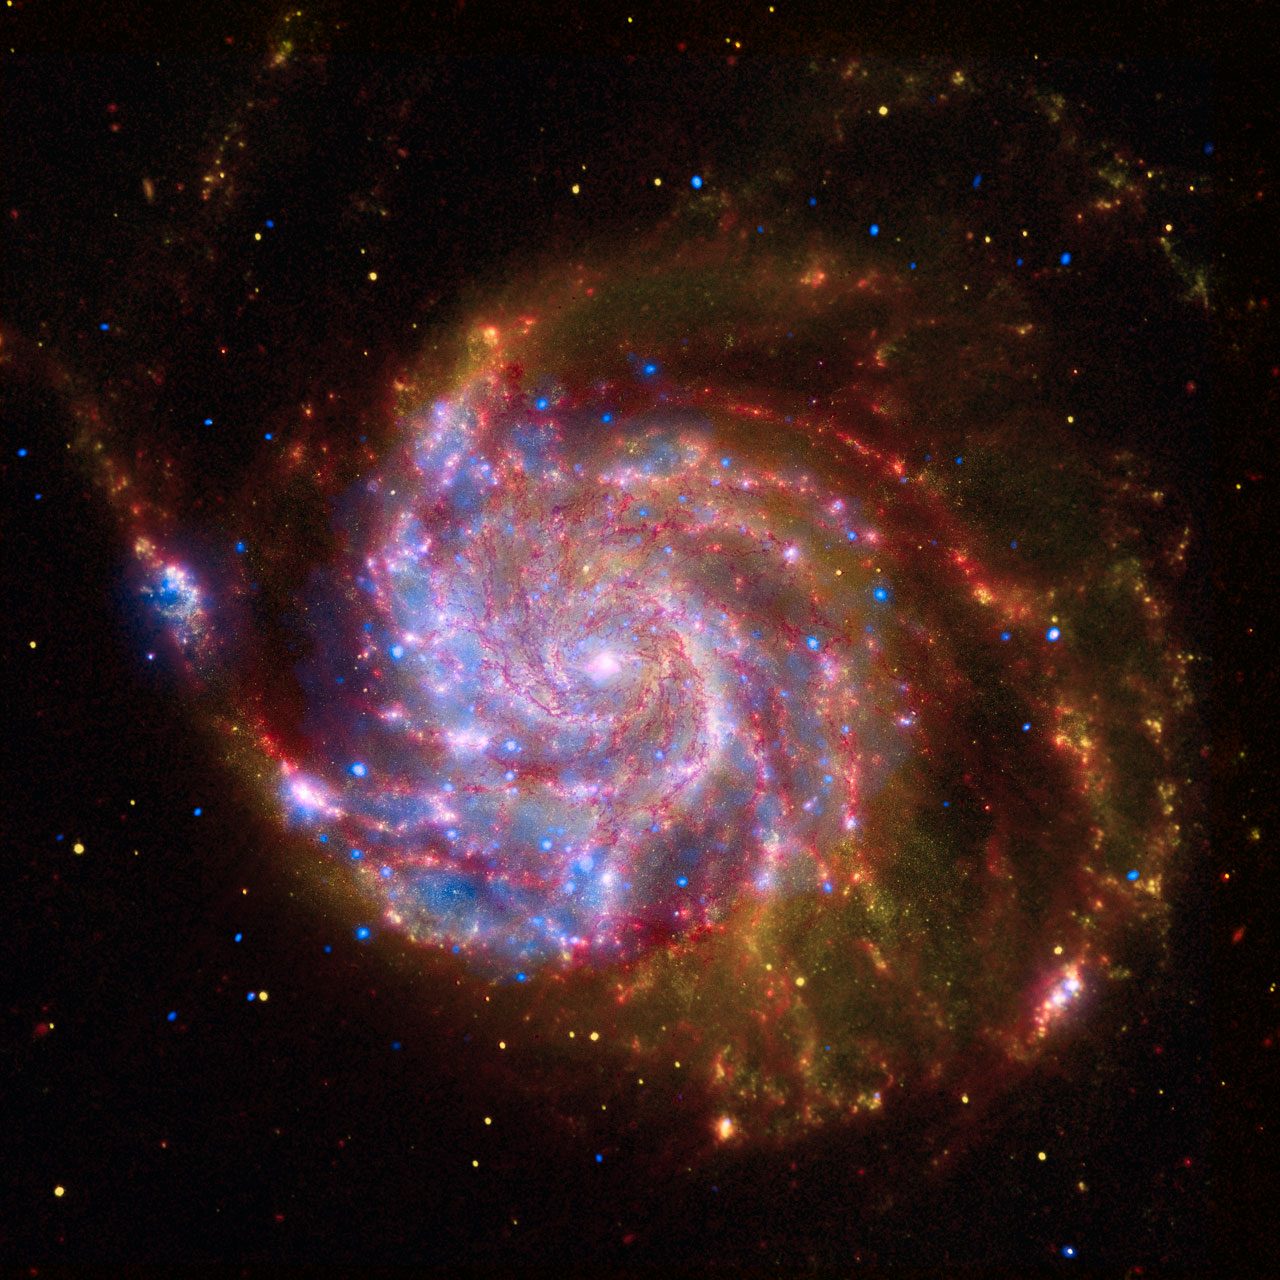 Spitzer-Hubble-Chandra Composite of M101 | ESA/Hubble